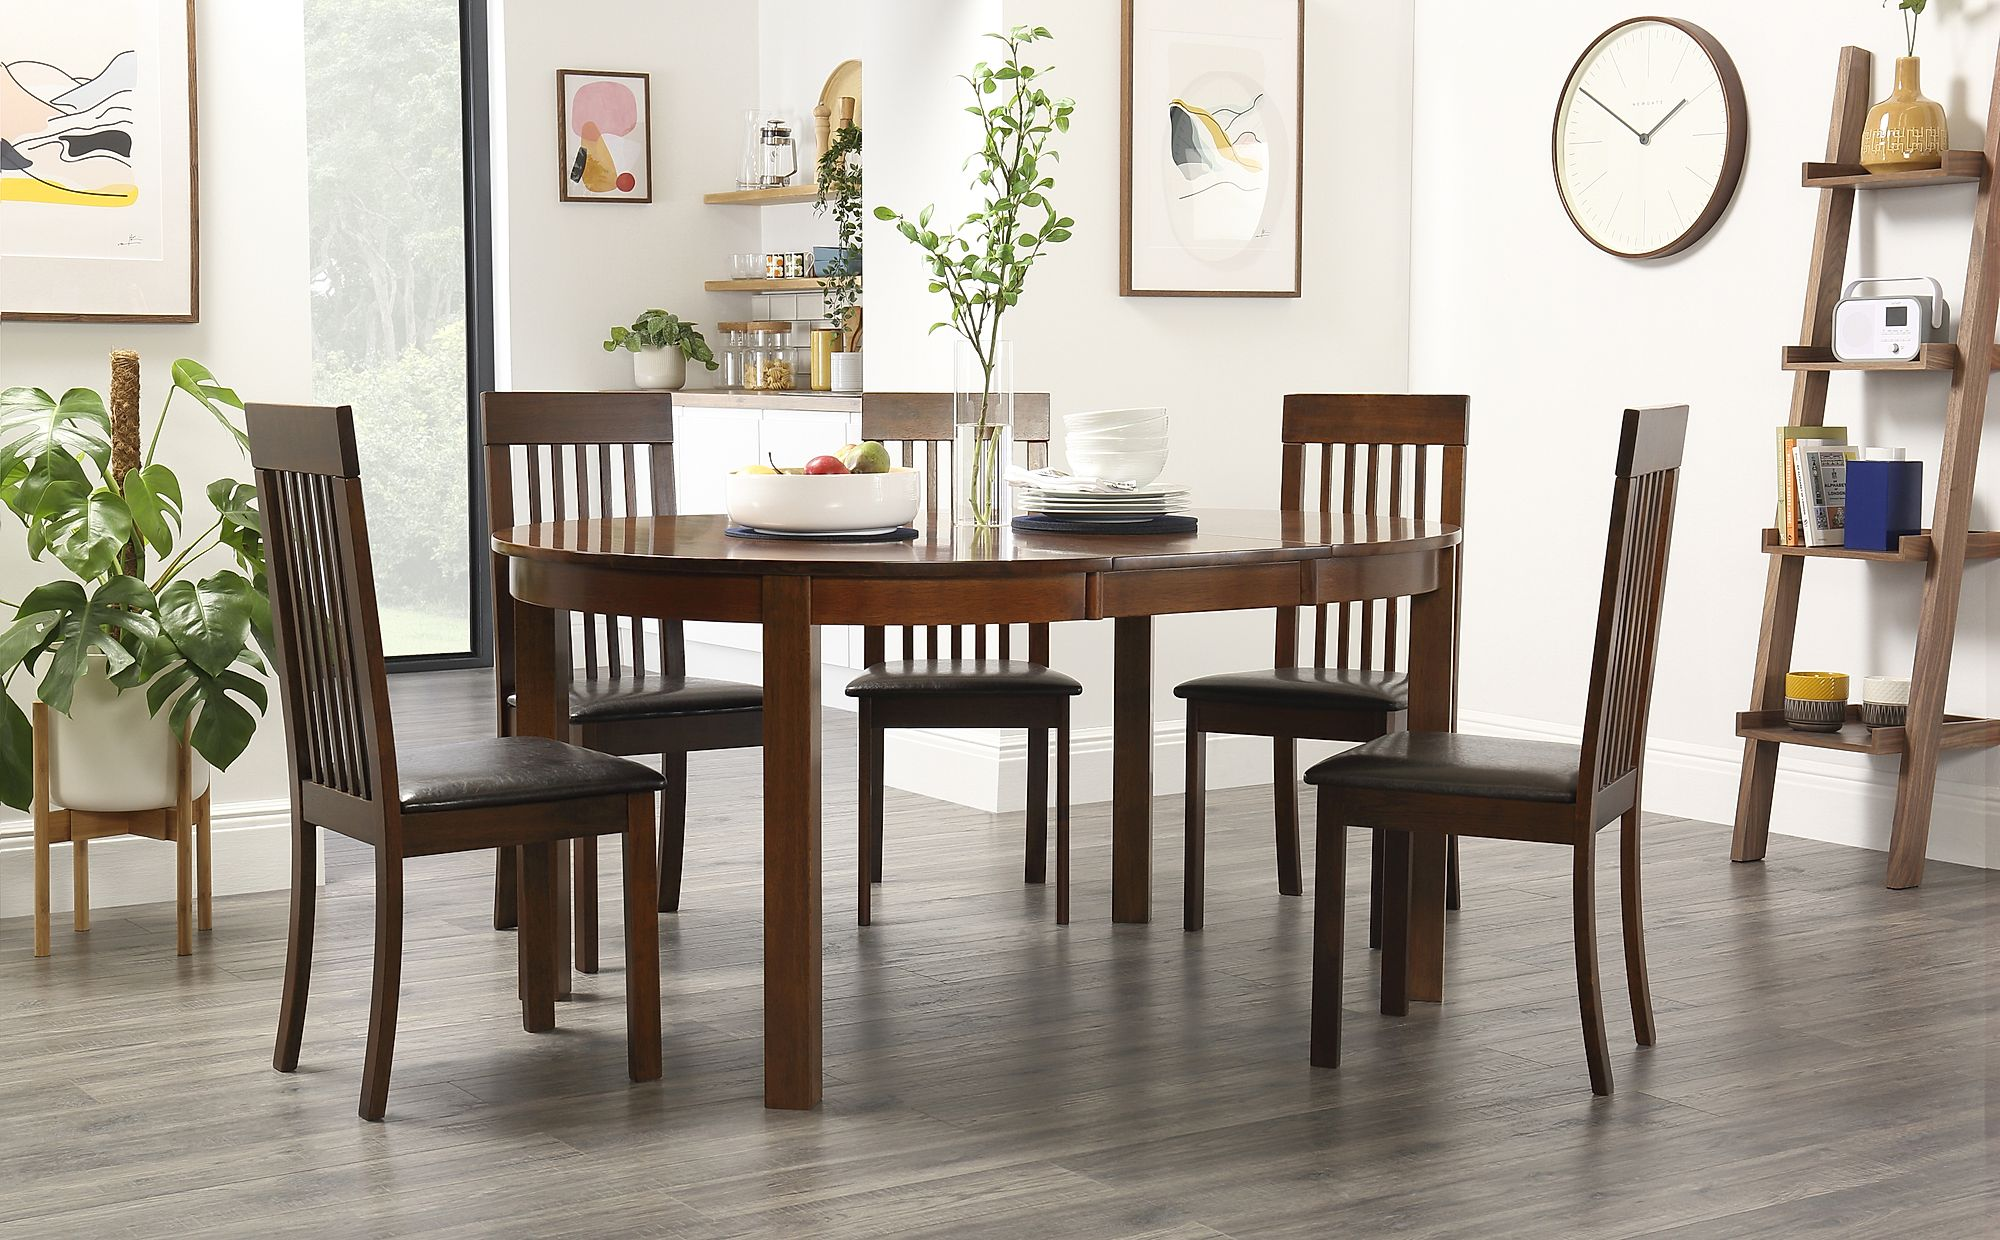 Surprising Details About Marlborough Round Dark Wood Extending Dining Table With 4 6 Oxford Chairs Onthecornerstone Fun Painted Chair Ideas Images Onthecornerstoneorg